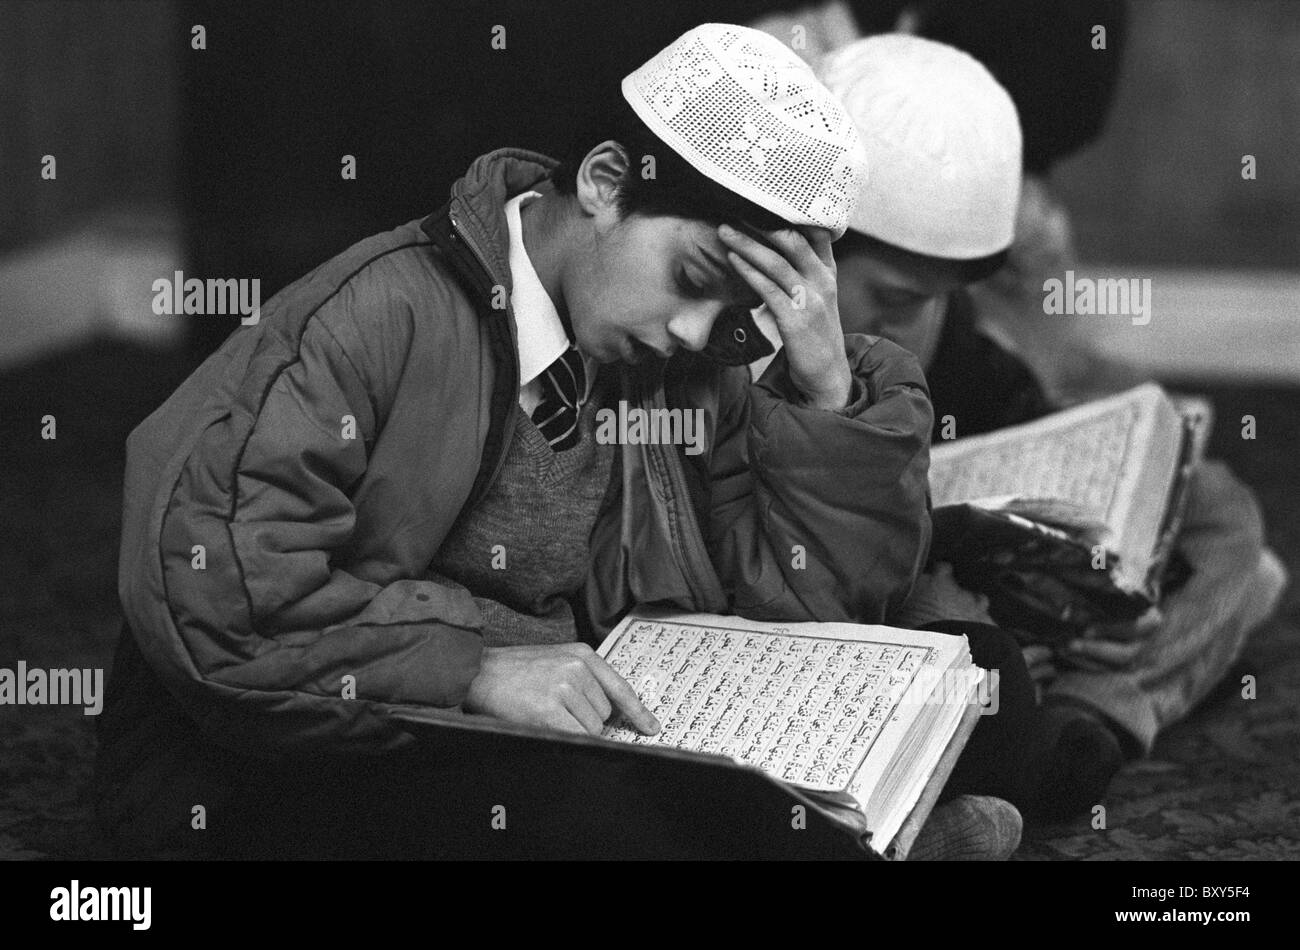 Moslem boys of Pakistani origin studying the Koran at a religious school in Bradford - Stock Image